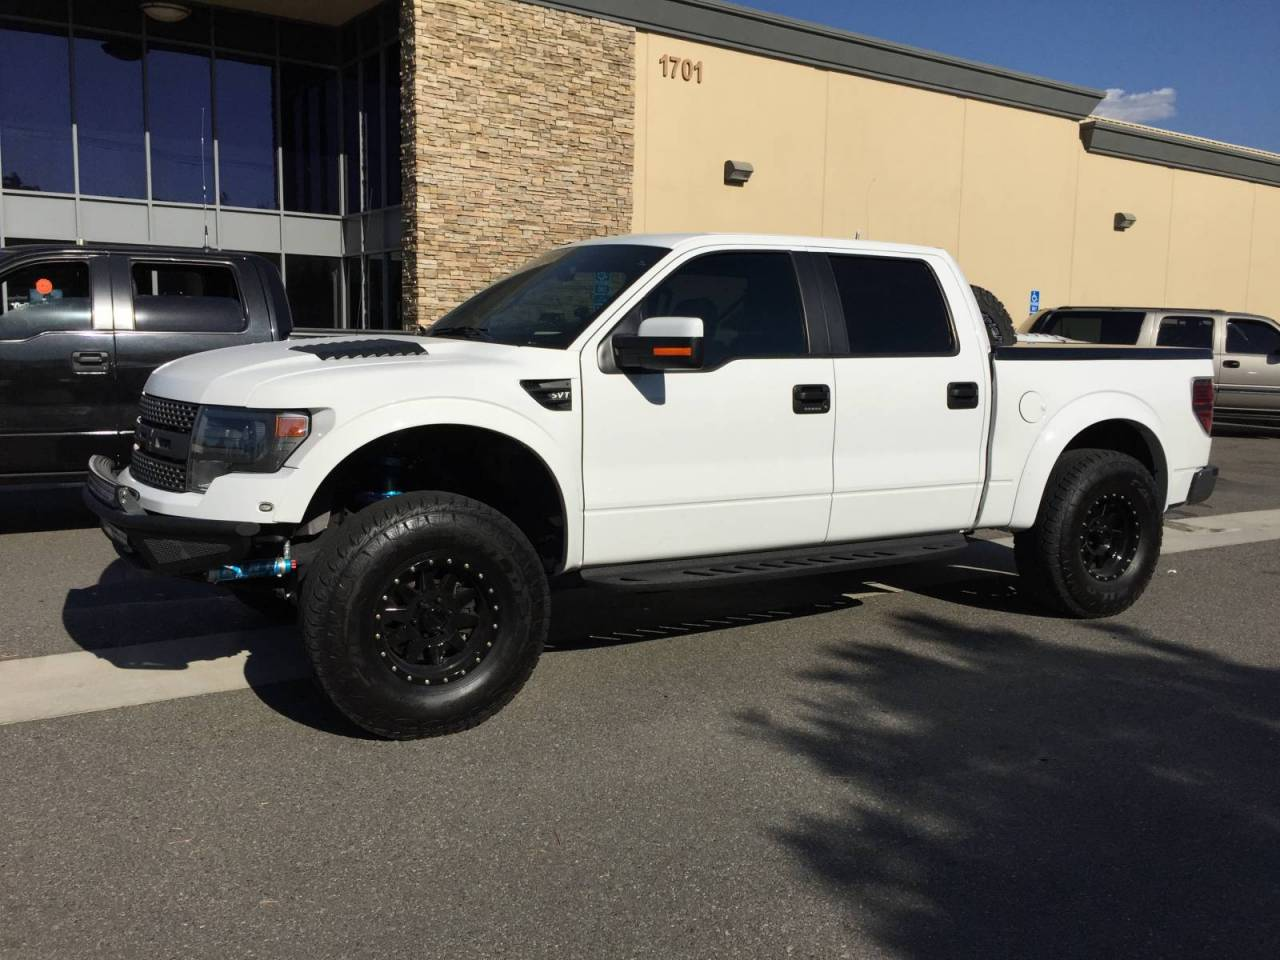 Photo Gallery 2013 Ford Raptor With Custom Bed Cover